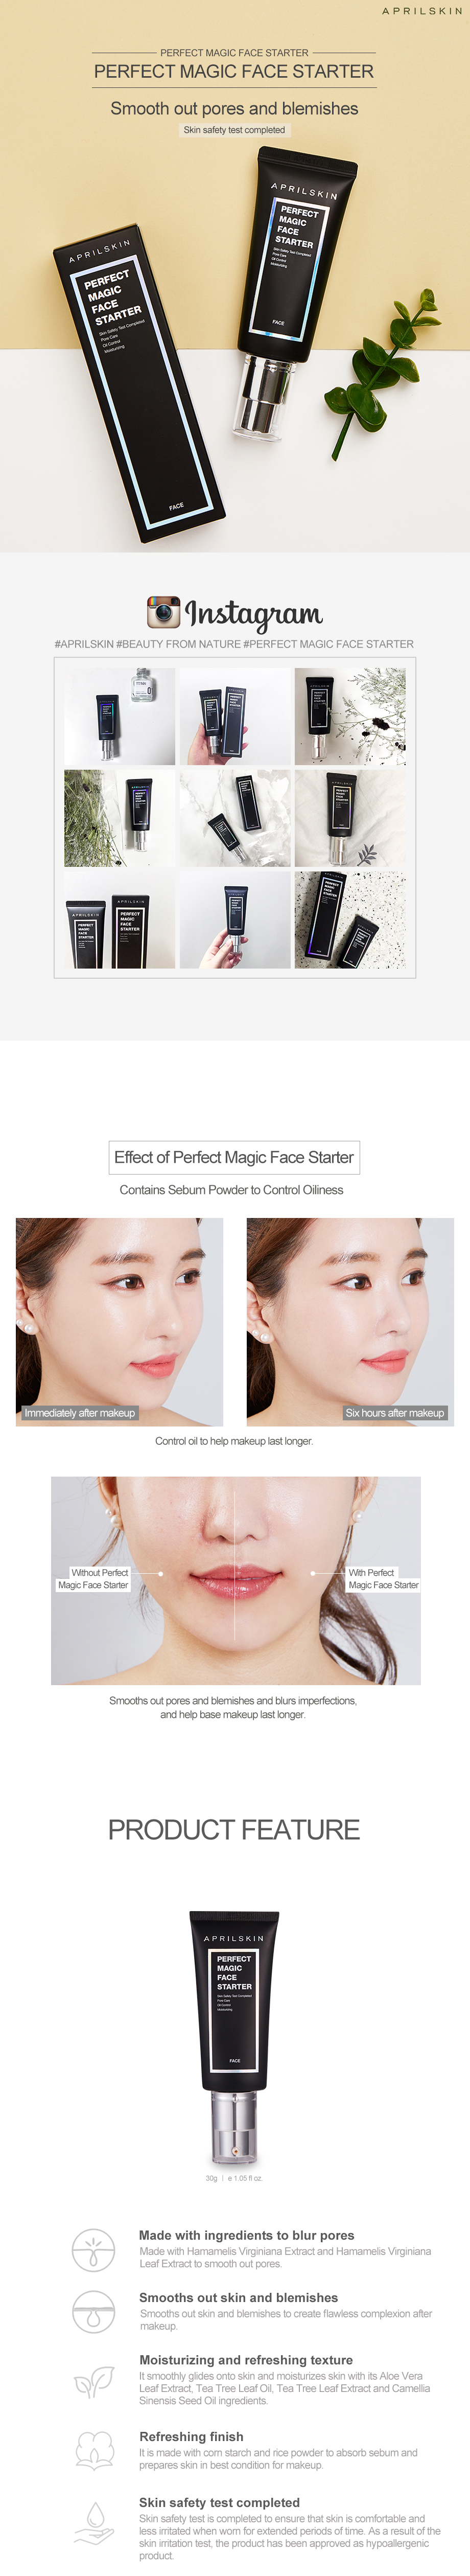 Perfect Magic Face Starter Aprilskin Awesomepouch